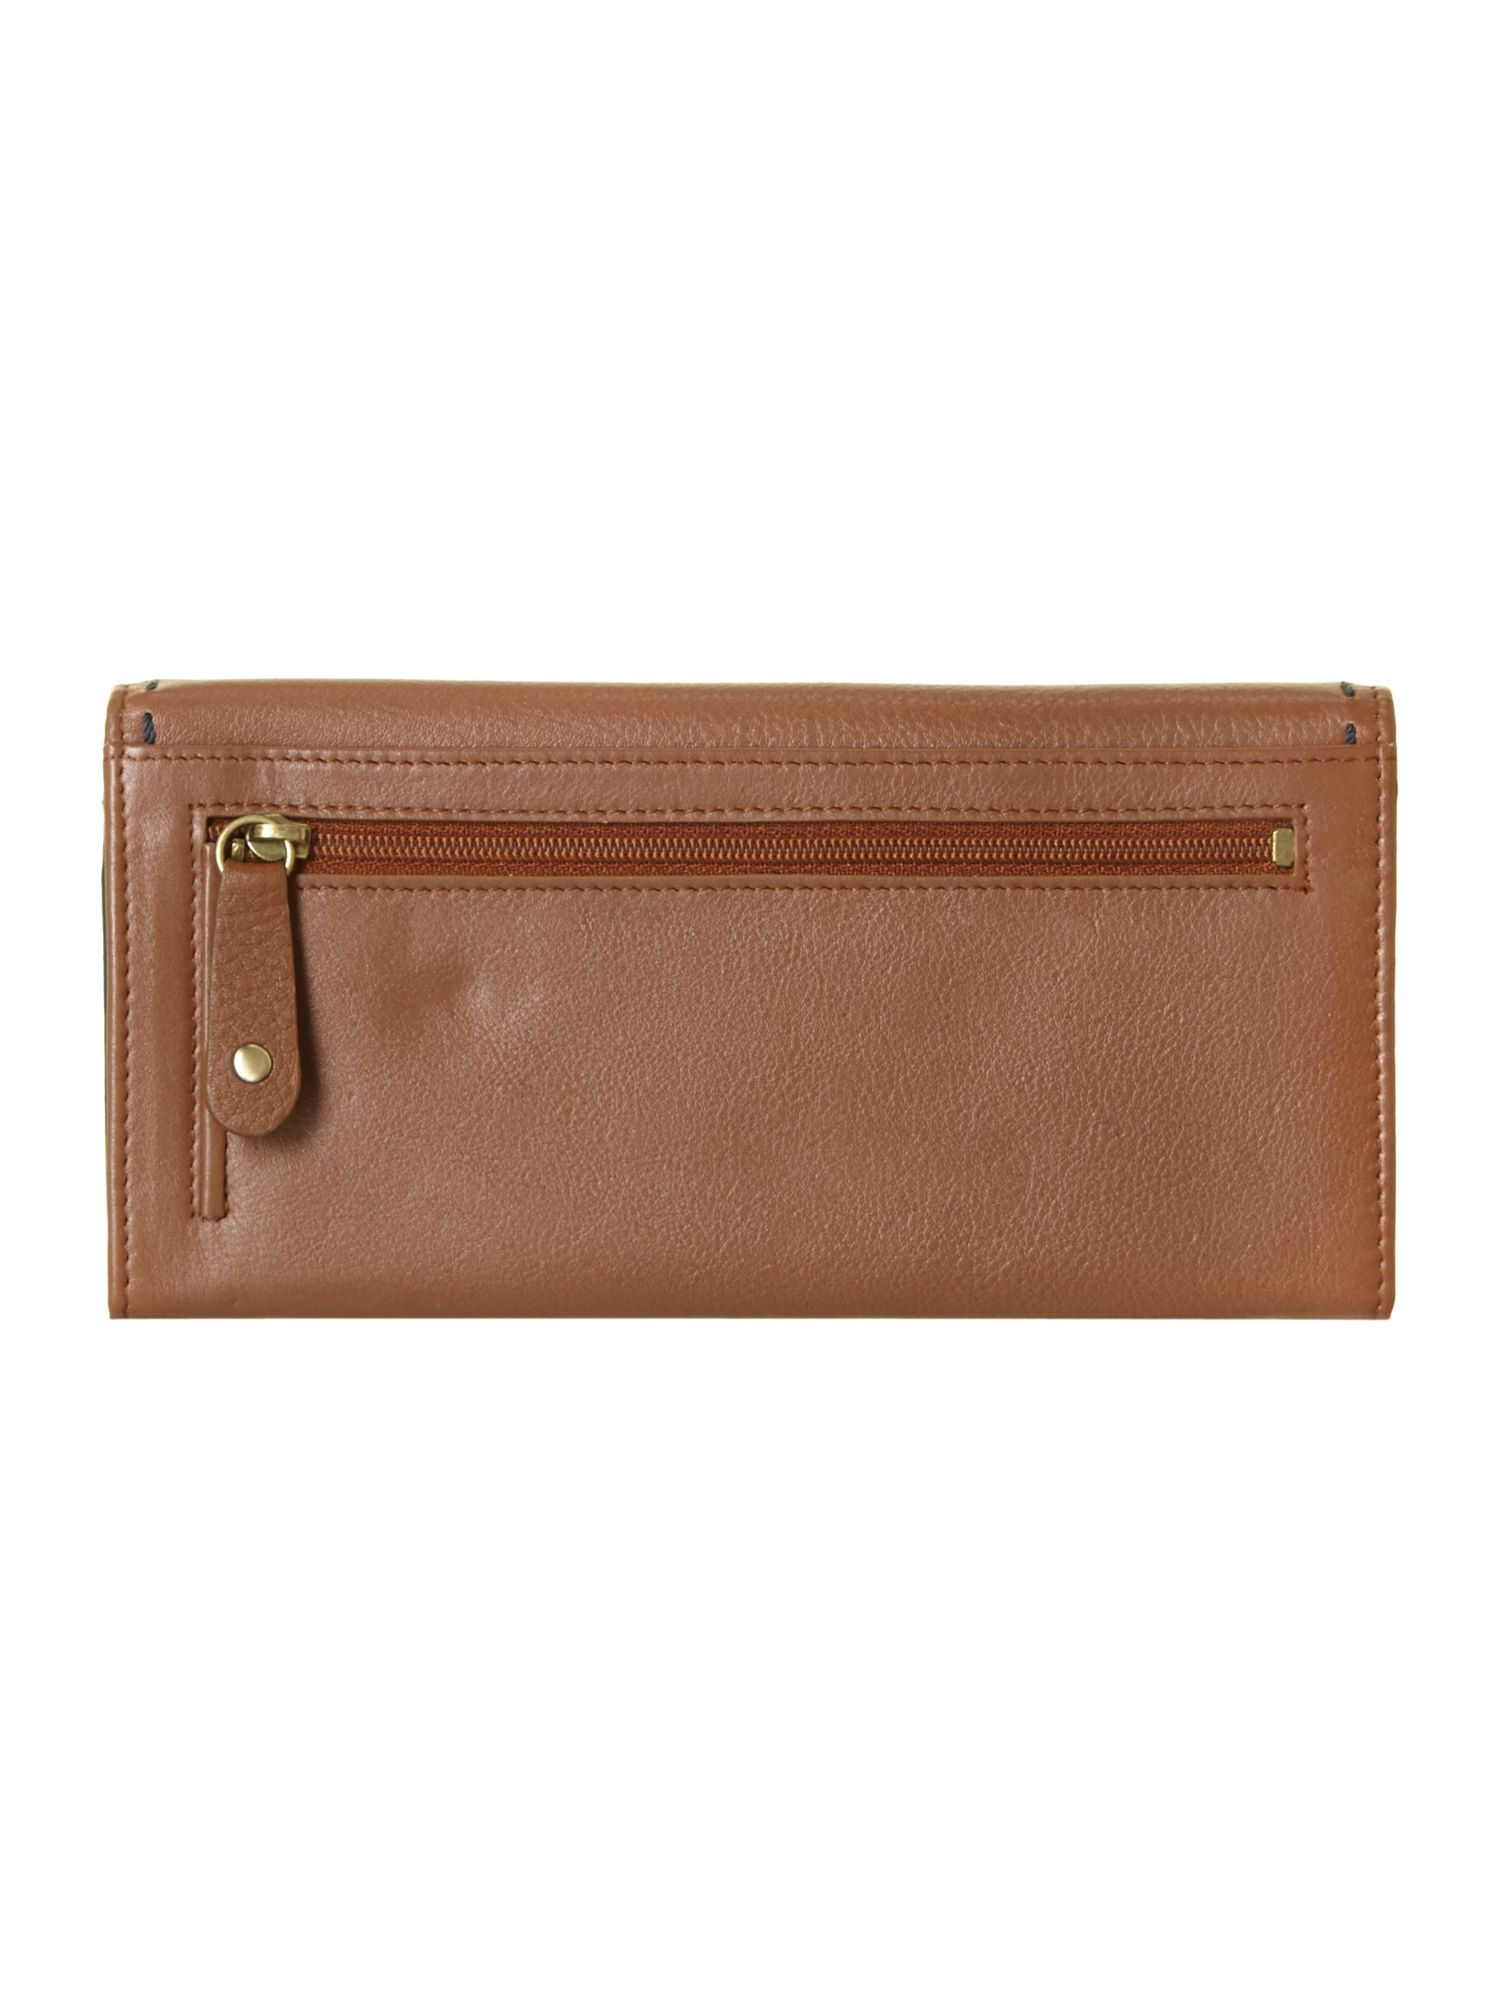 Poppy large flapover purse